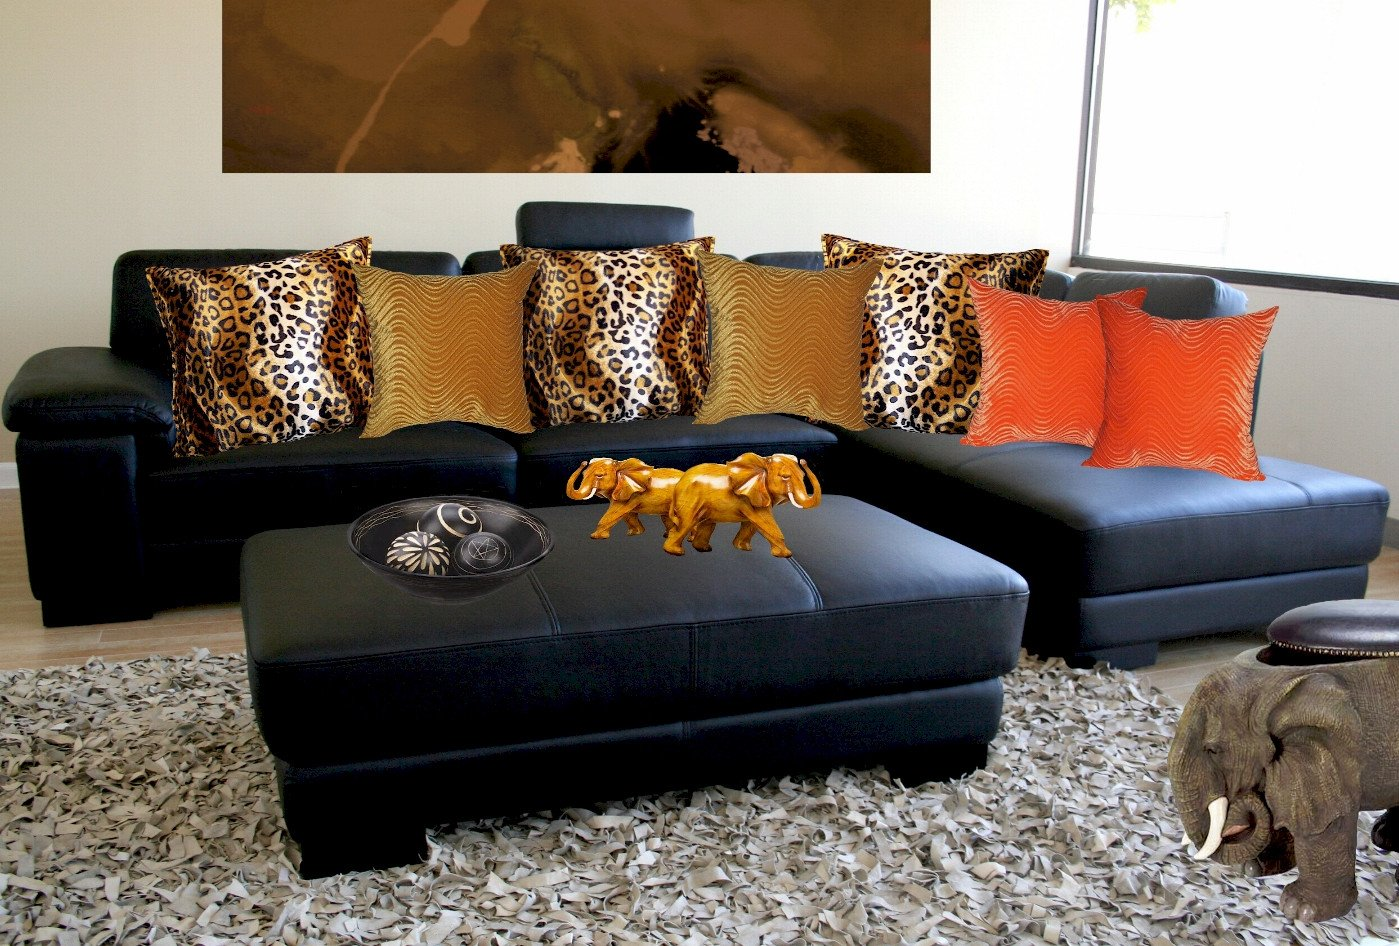 Leopard Decor for Living Room Cheetah Print Room Decor Leopard for Living Animal Sets